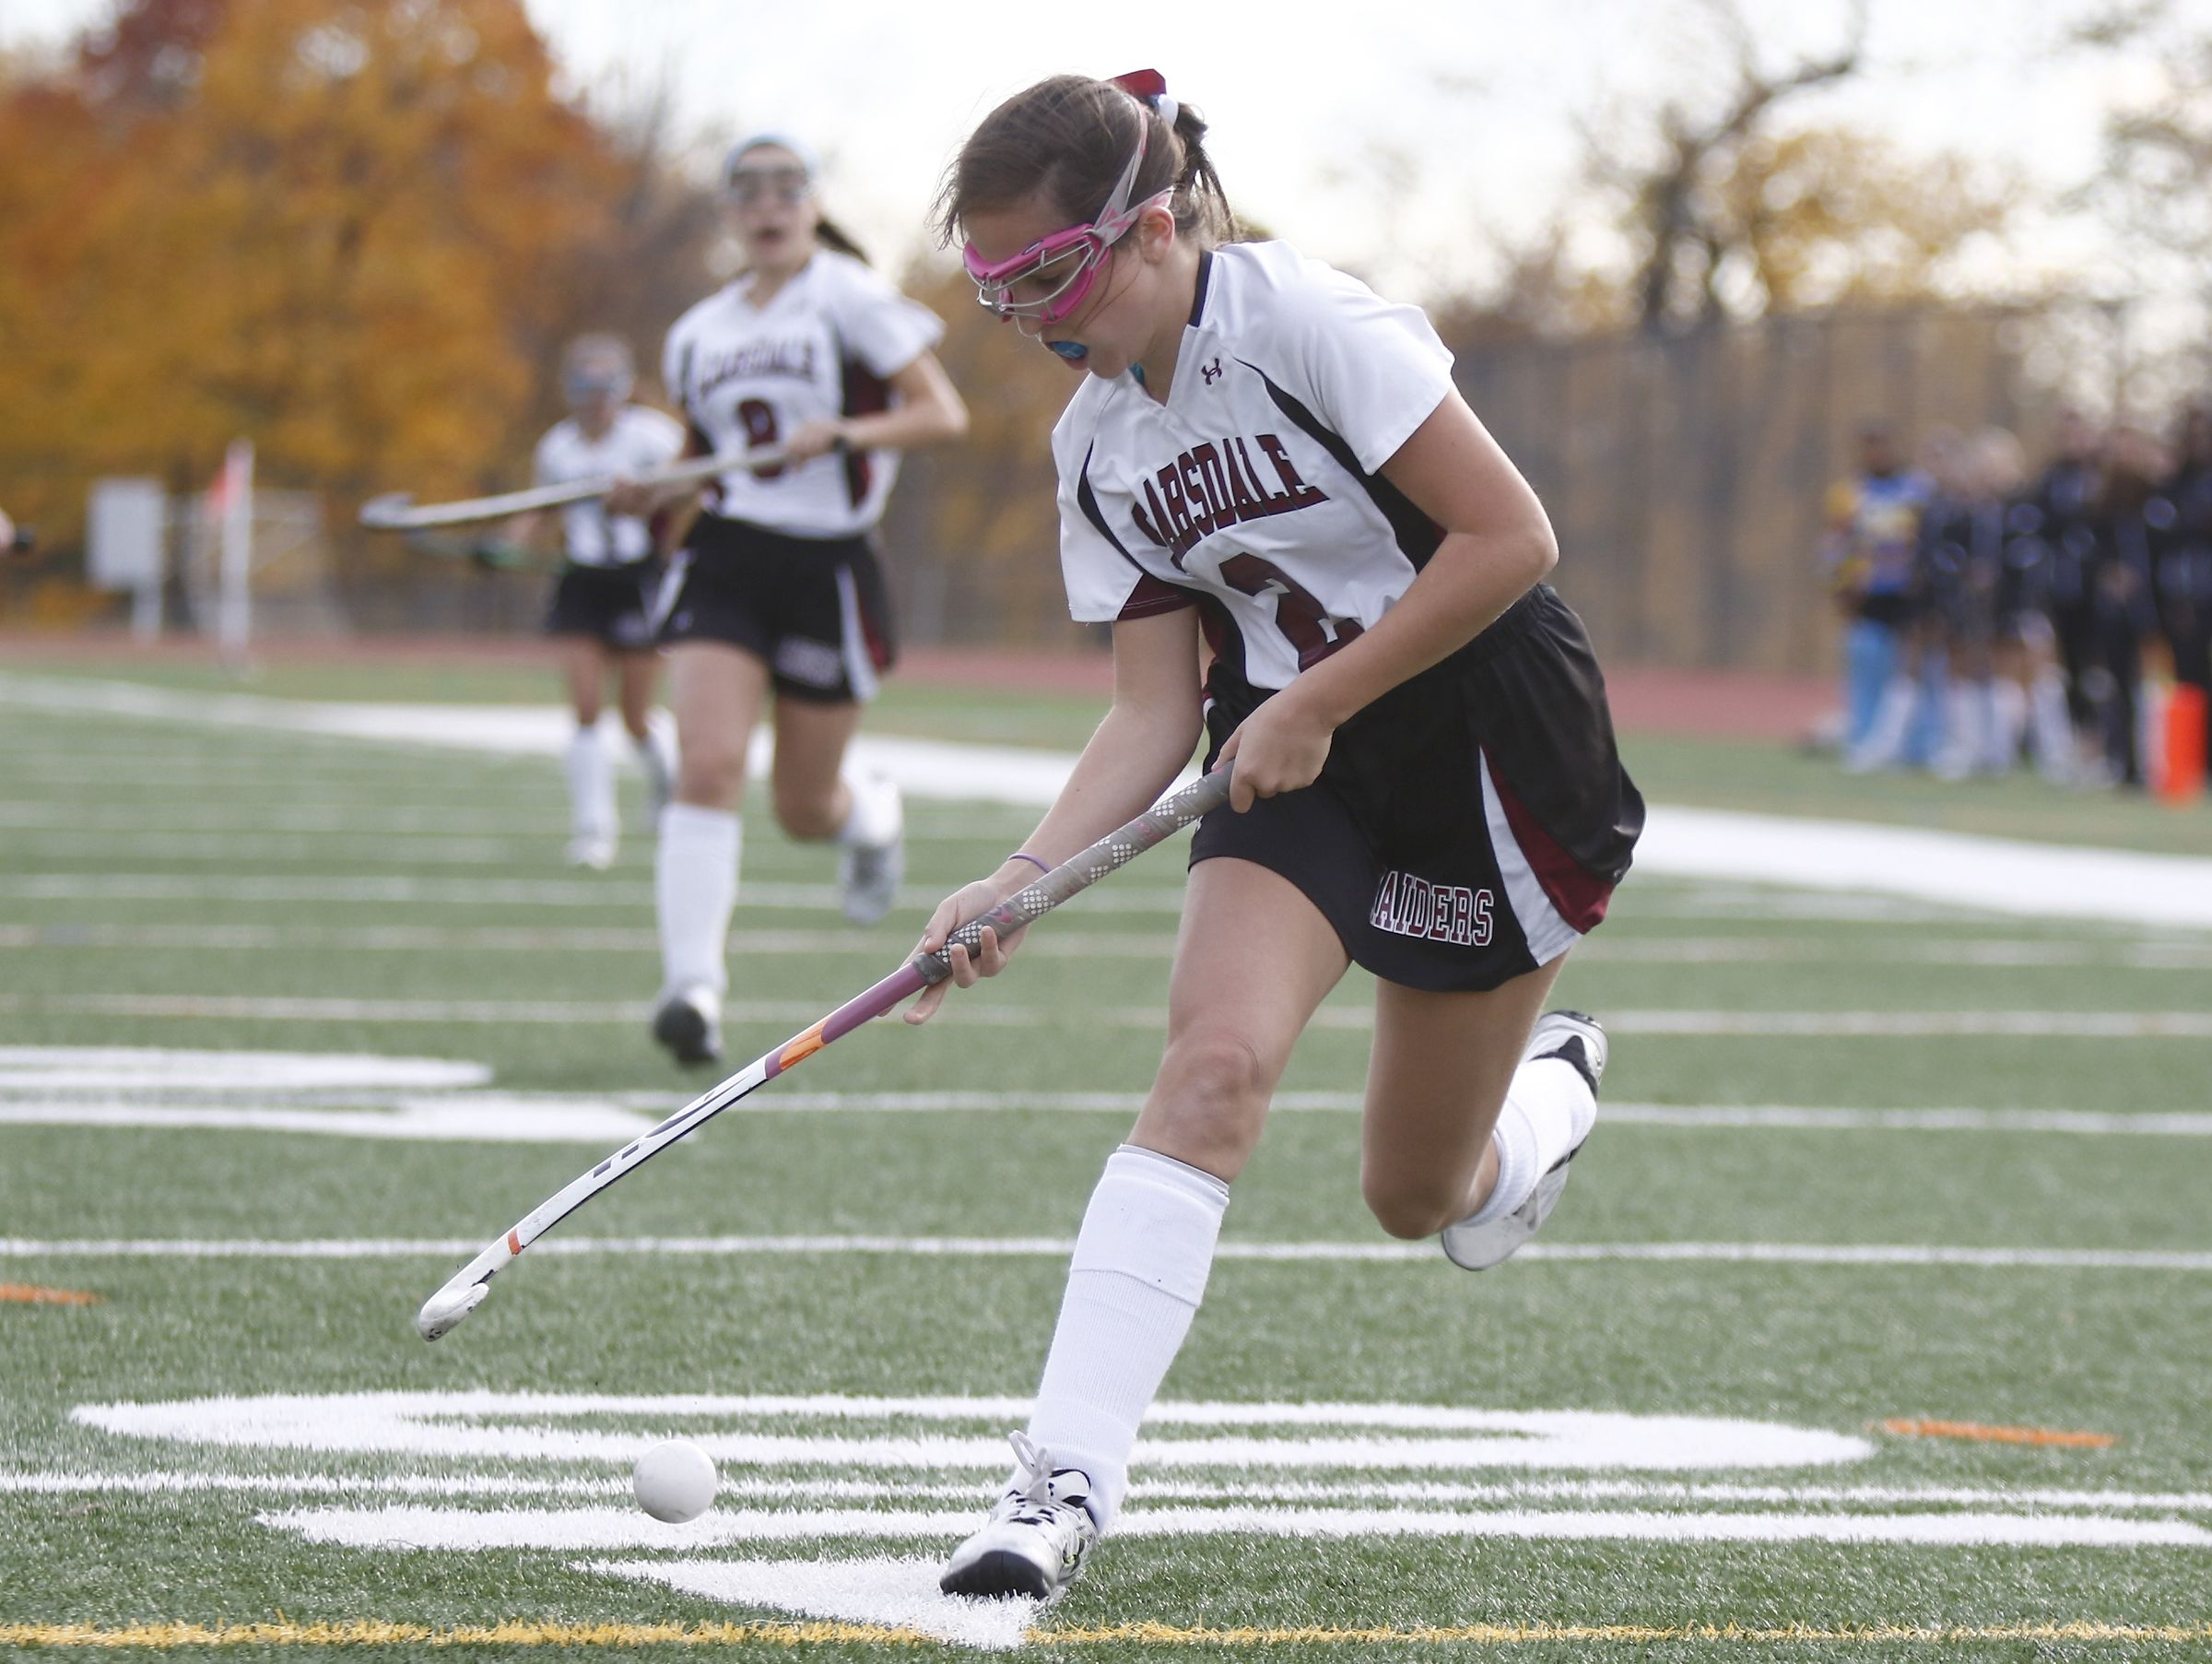 Scarsdale's Elizabeth Scarcella (2) controls the ball during their 5-0 win in the Class A regional championship field hockey game at Valhalla High School on Saturday, November 5, 2016.